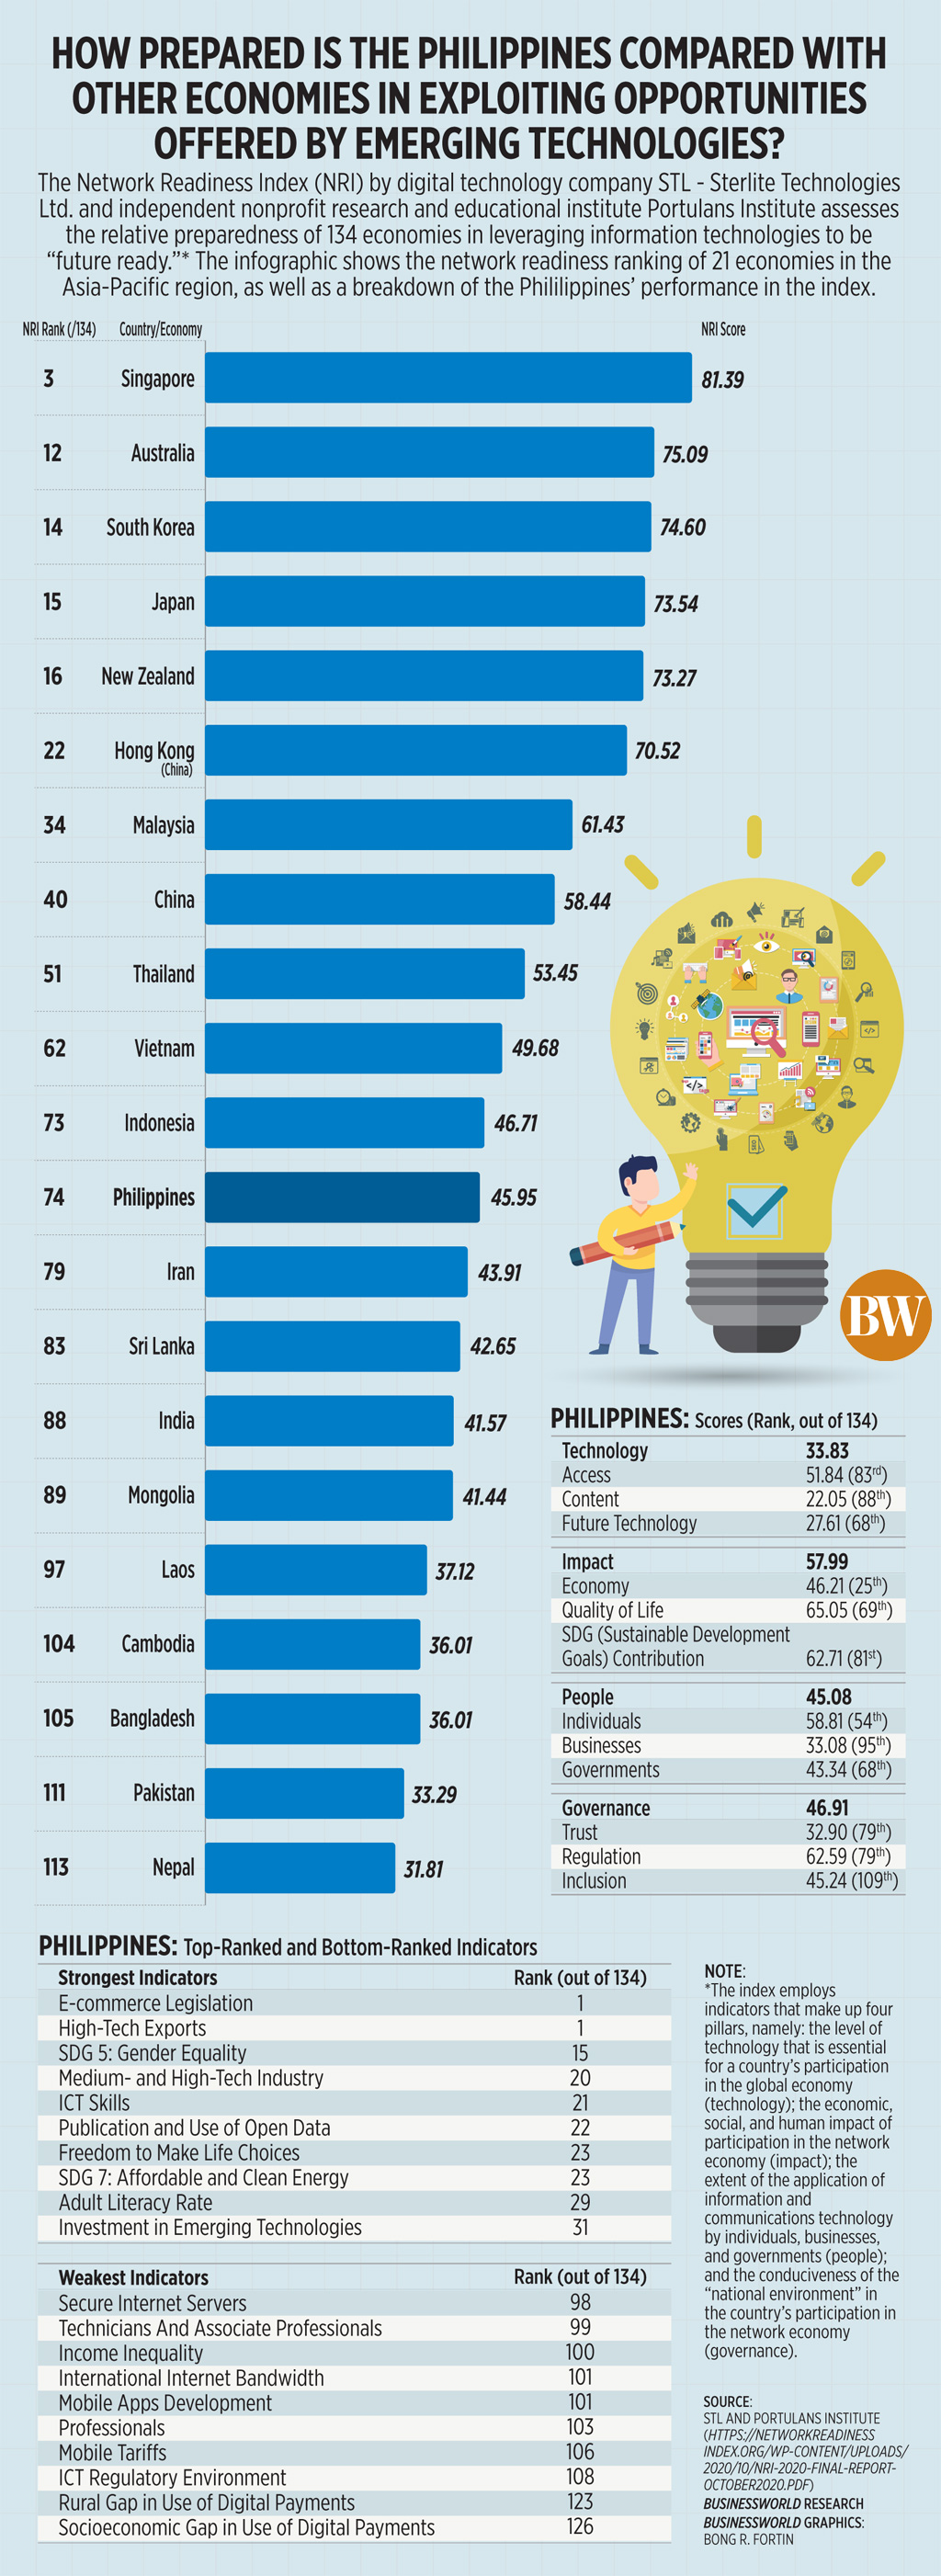 How prepared is the Philippines compared with other economies in exploiting opportunities offered by emerging technologies?